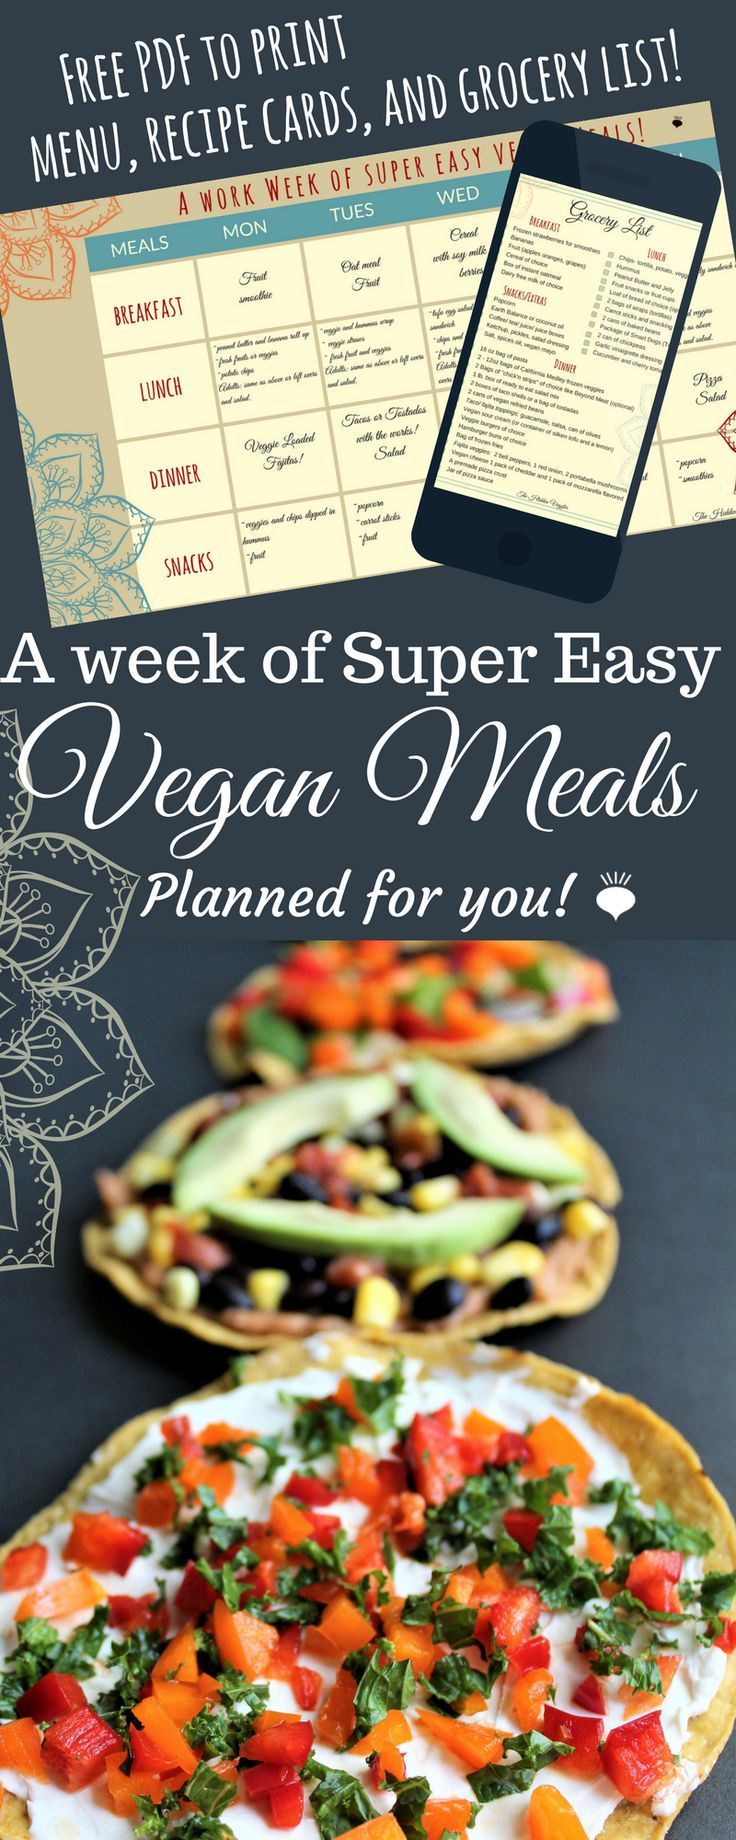 Easy vegan and gluten free meals planed for you! Free PDF